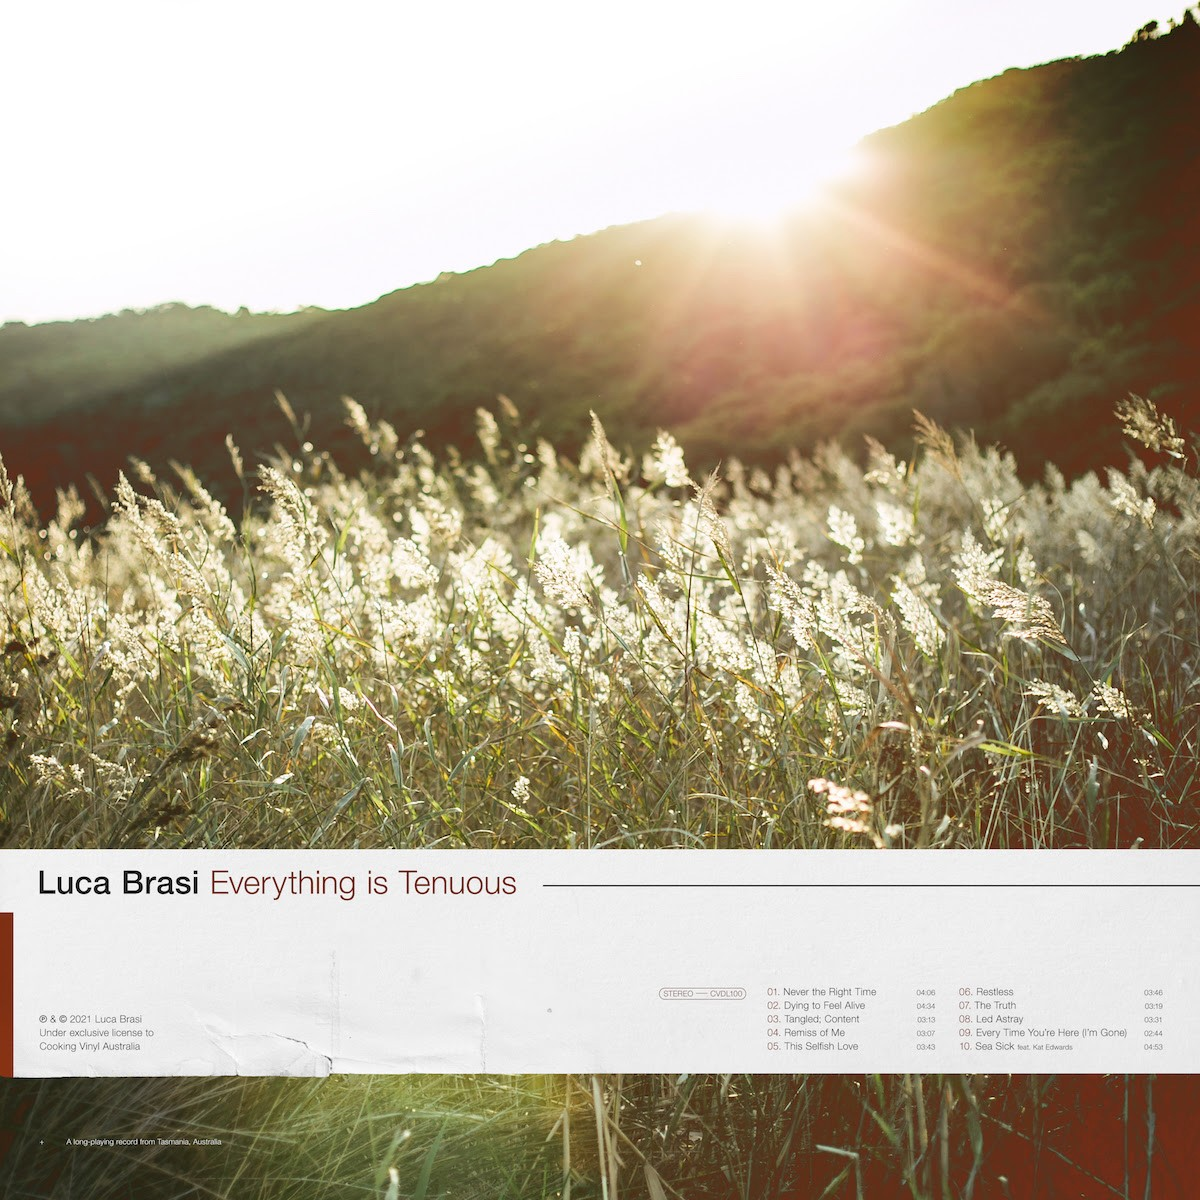 luca brasi everything is tenuous album artwork